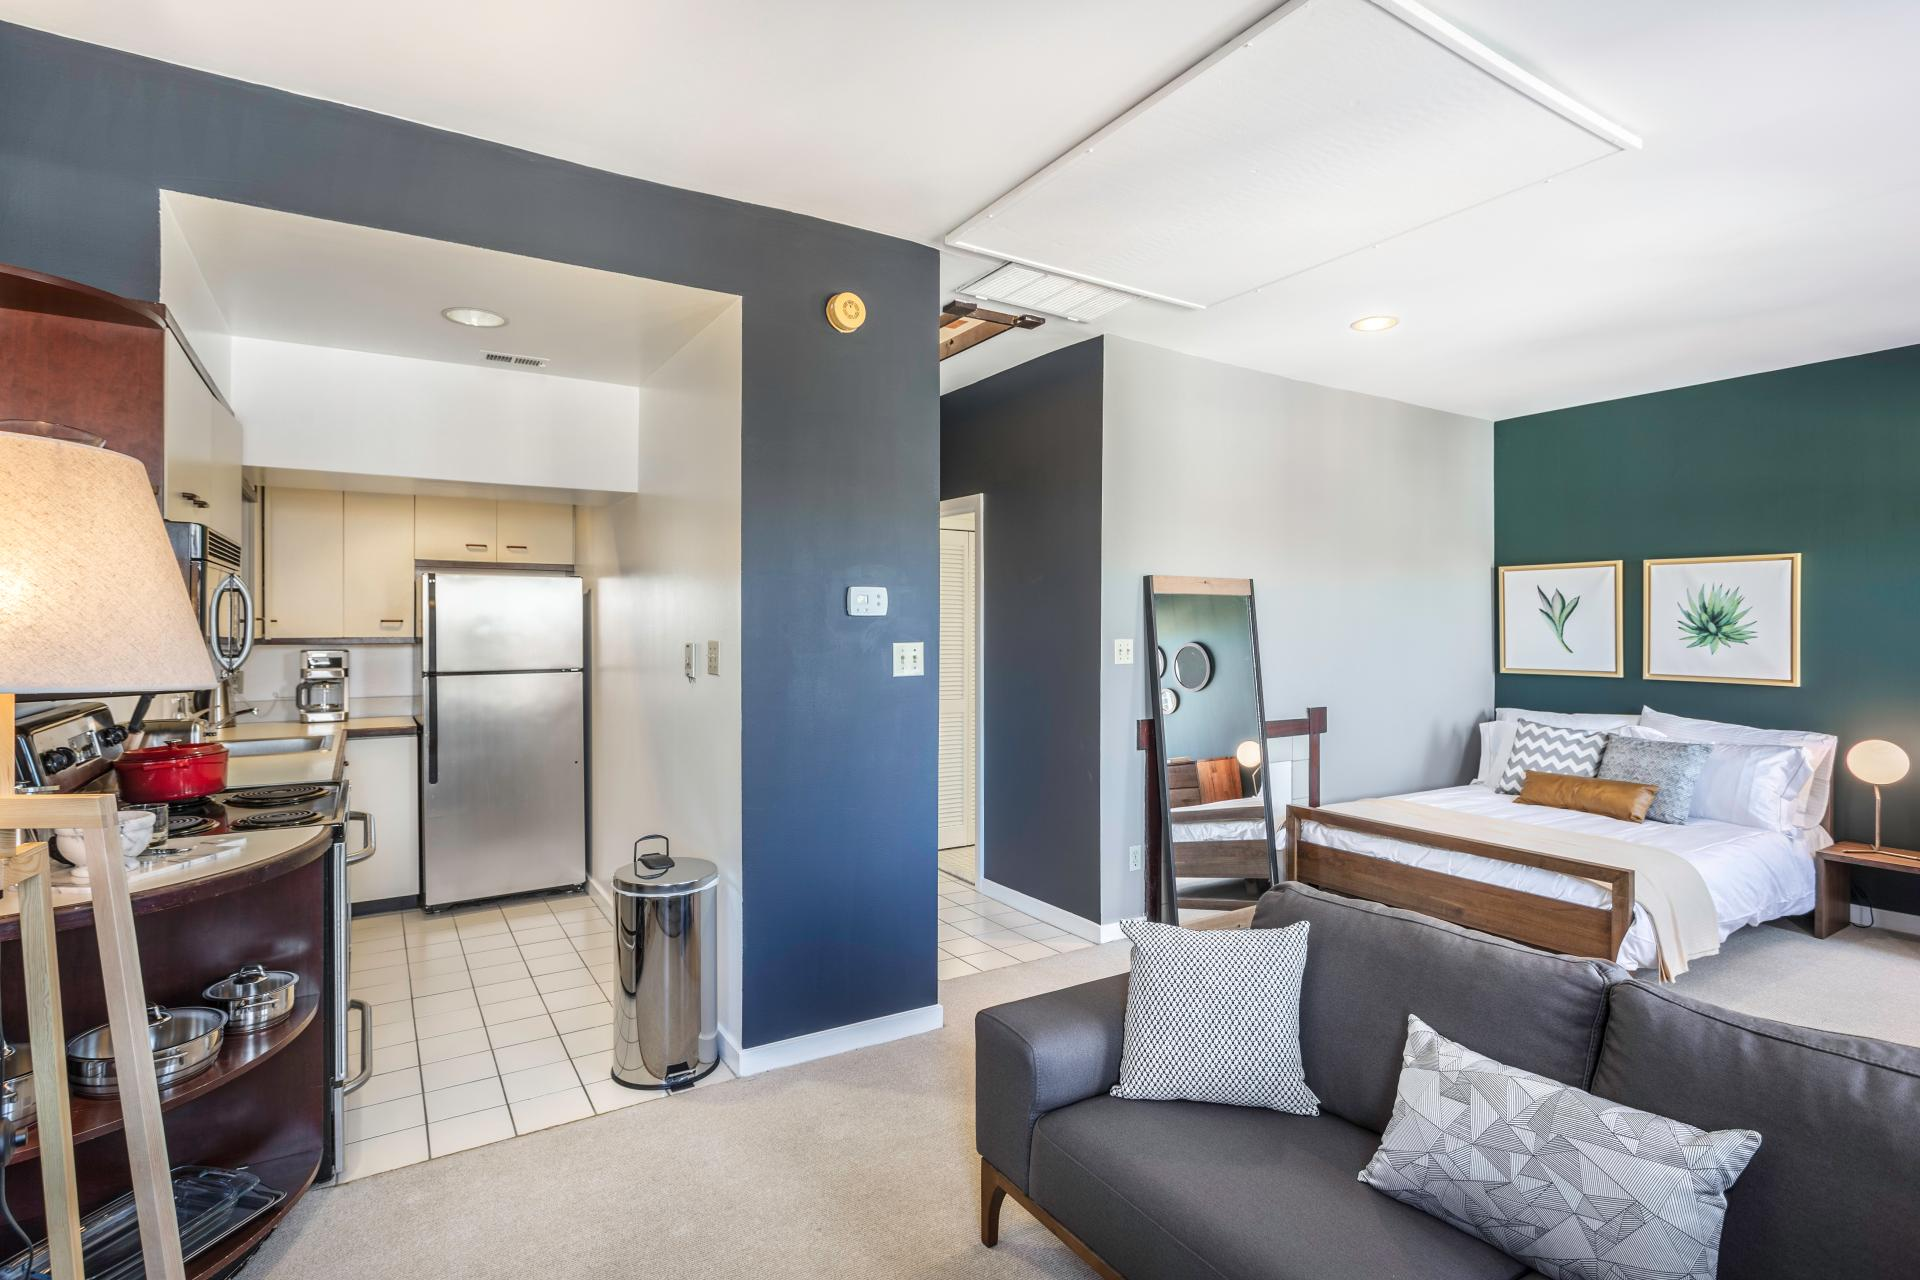 blueprint blueground Georgetown apartments DC studio apartment with blue and green walls and grey couch